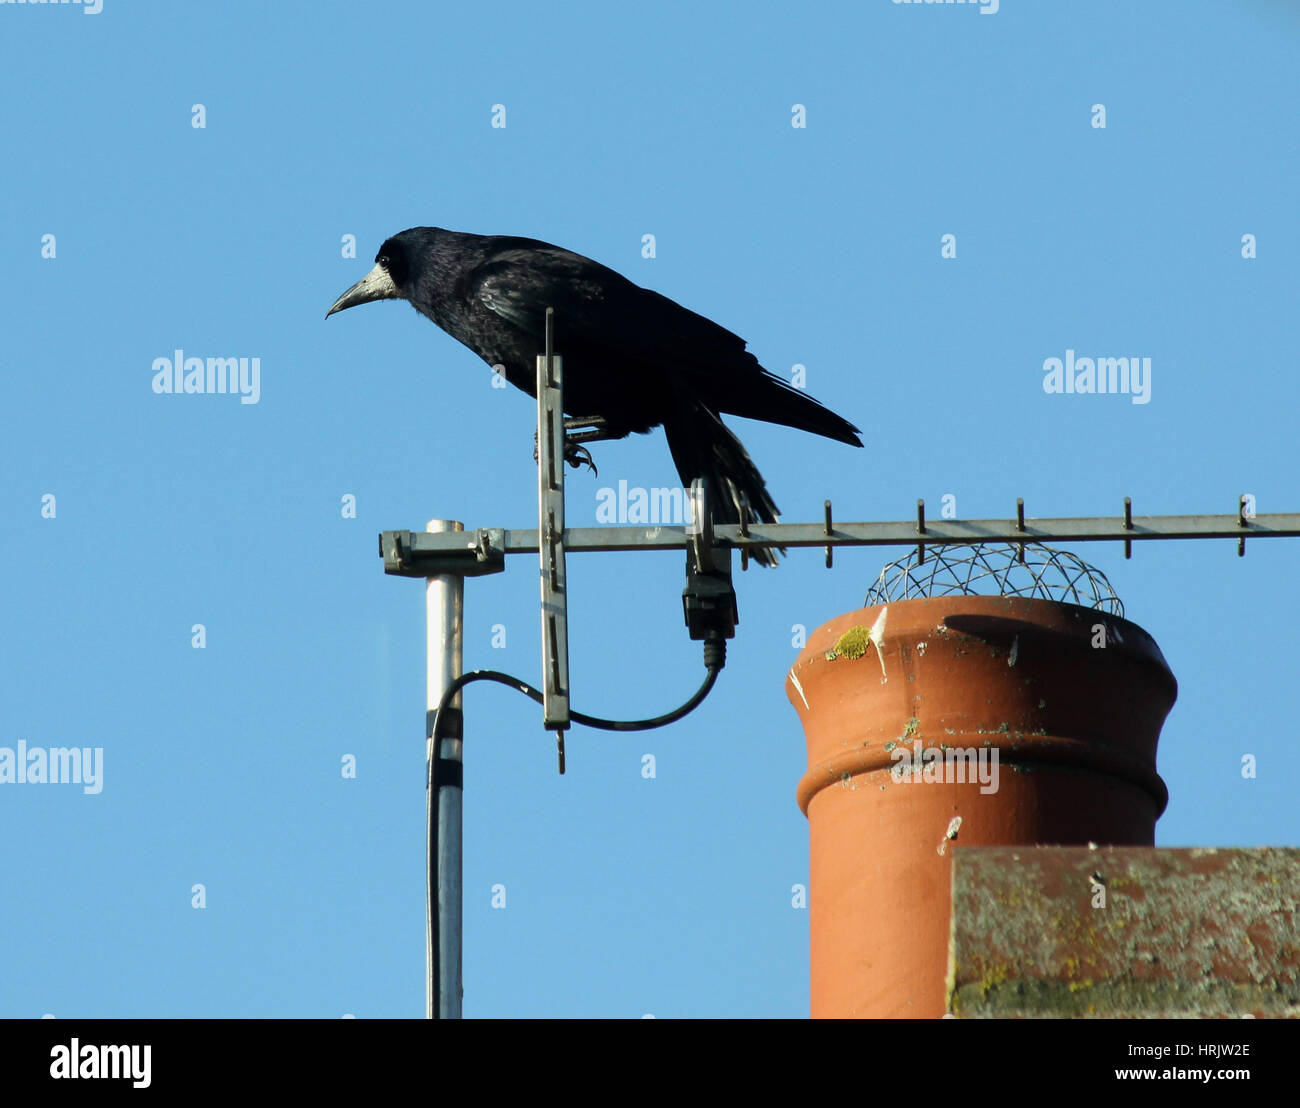 A rook perched on a television aerial next to a chimney at the edge of the ridgepole of a roof against a blue sky - Stock Image